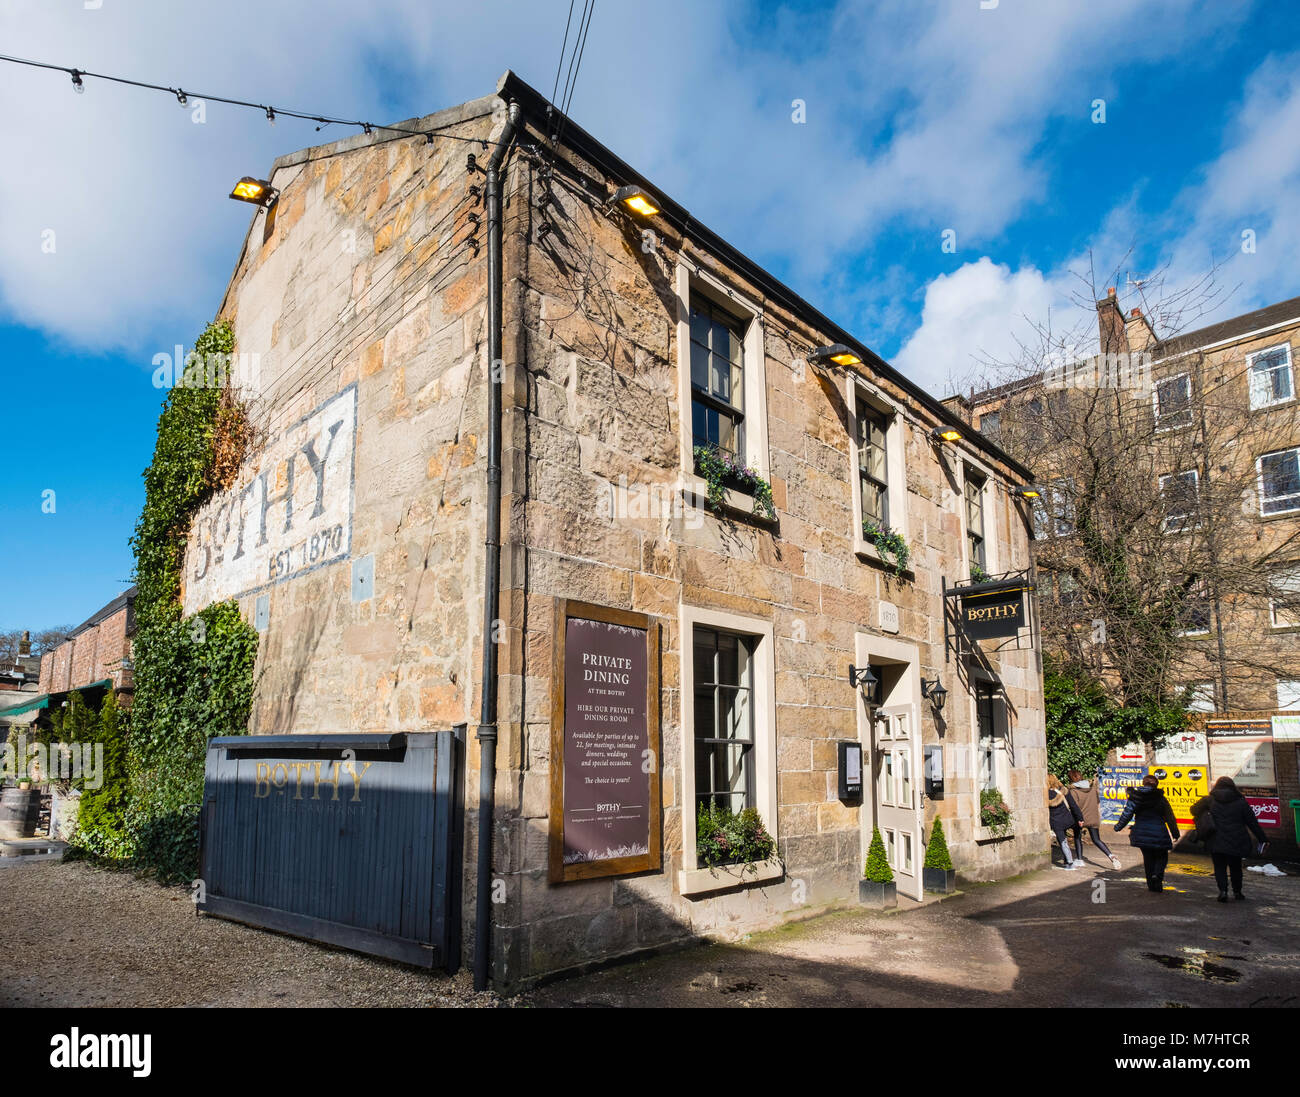 The Bothy restaurant on Ruthven Lane mews off Byres Road in Glasgow West End, Scotland, United Kingdom - Stock Image